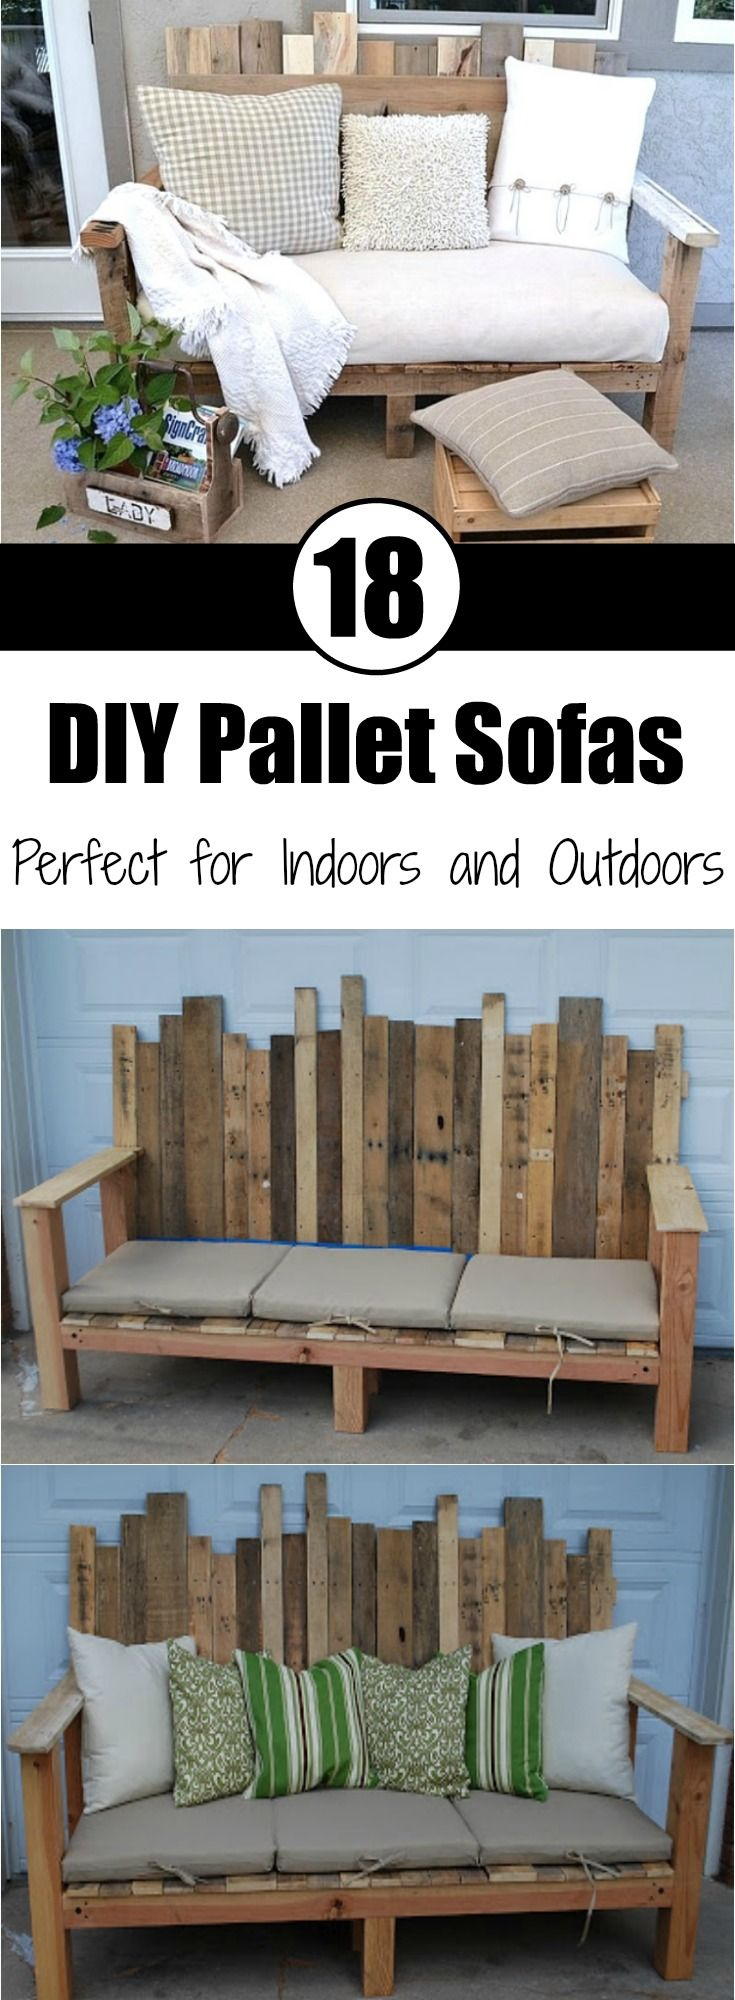 18 DIY Pallet Sofas Perfect for Indoors